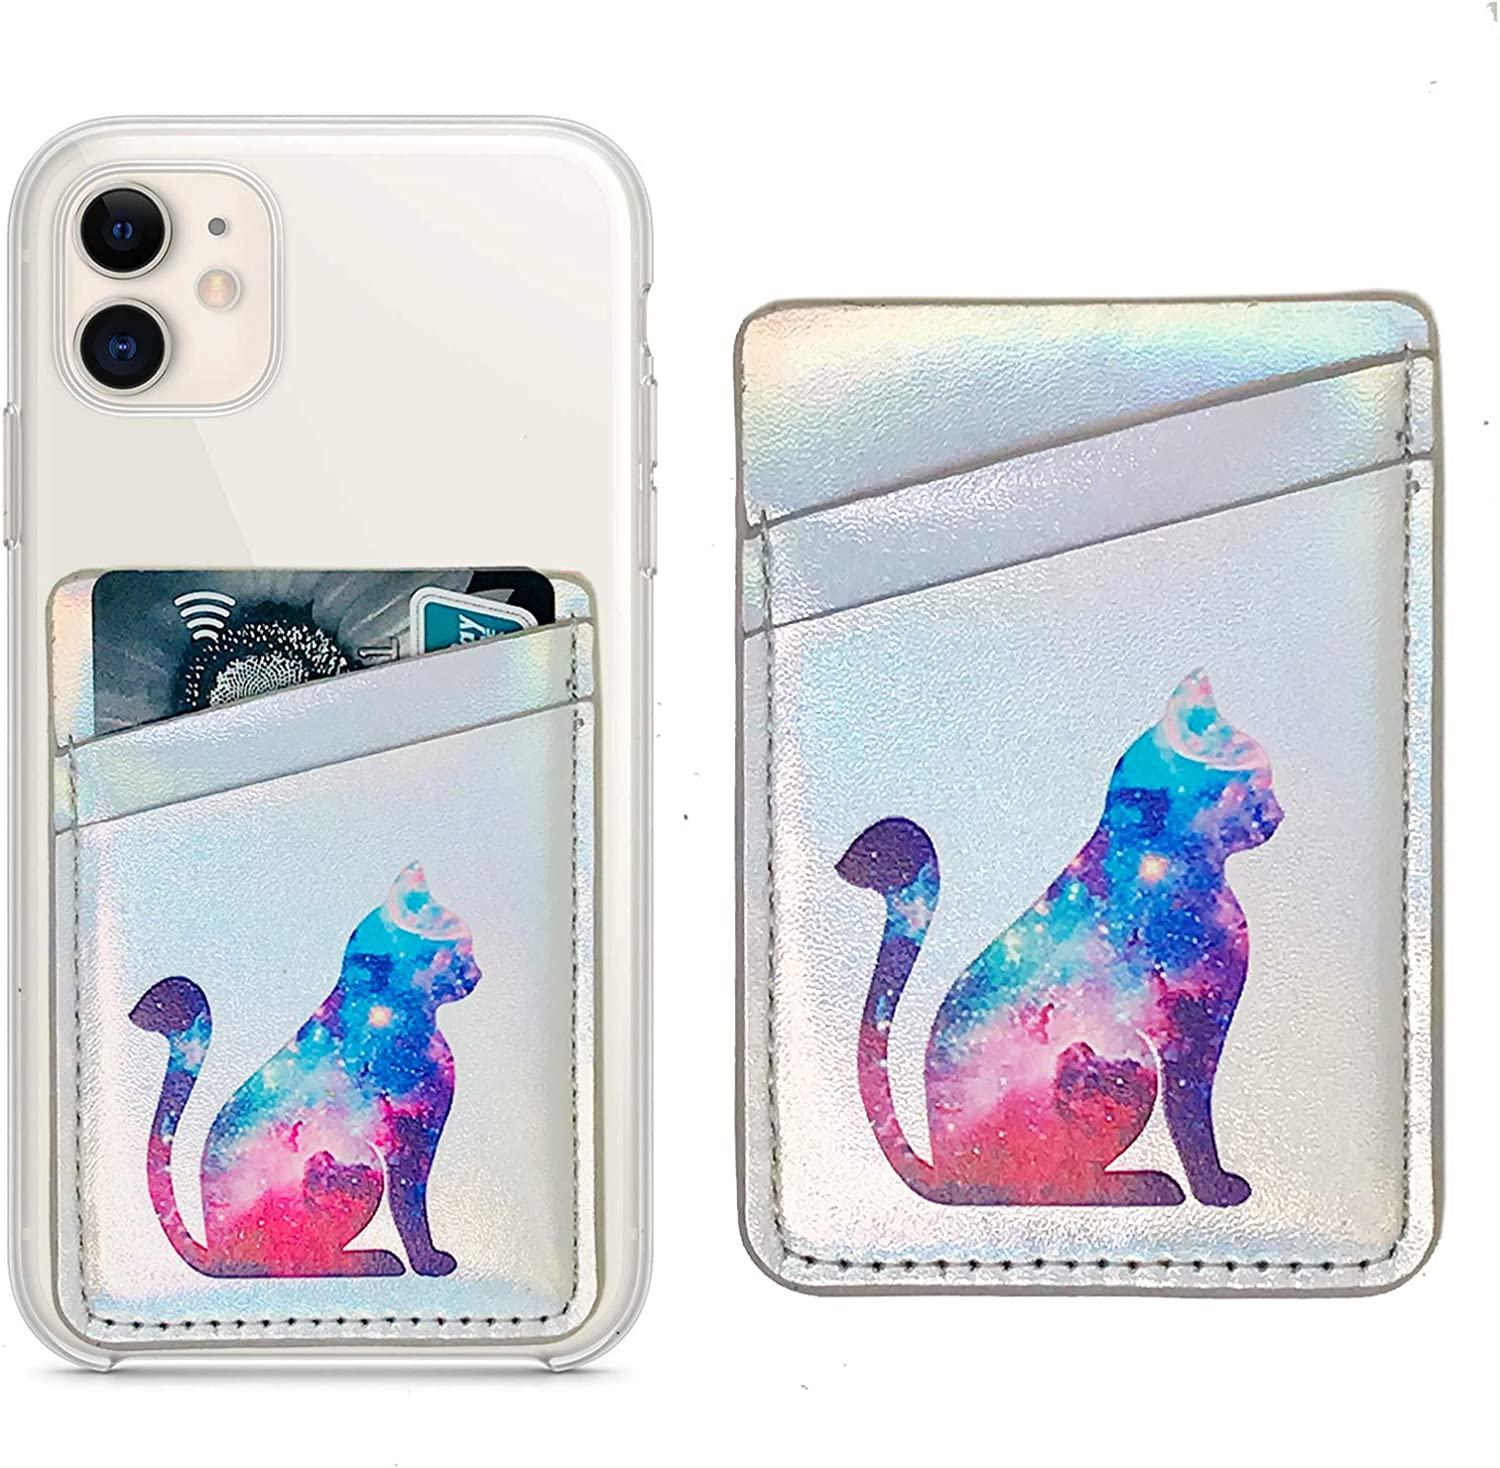 Oddss Cell Phone Card Hoder Sleeves RFID Blocking PU Leather Pocket Wallet Stick on Cell Phone Credit for Back of iPhone,Android Smartphones (Nebula Cat)